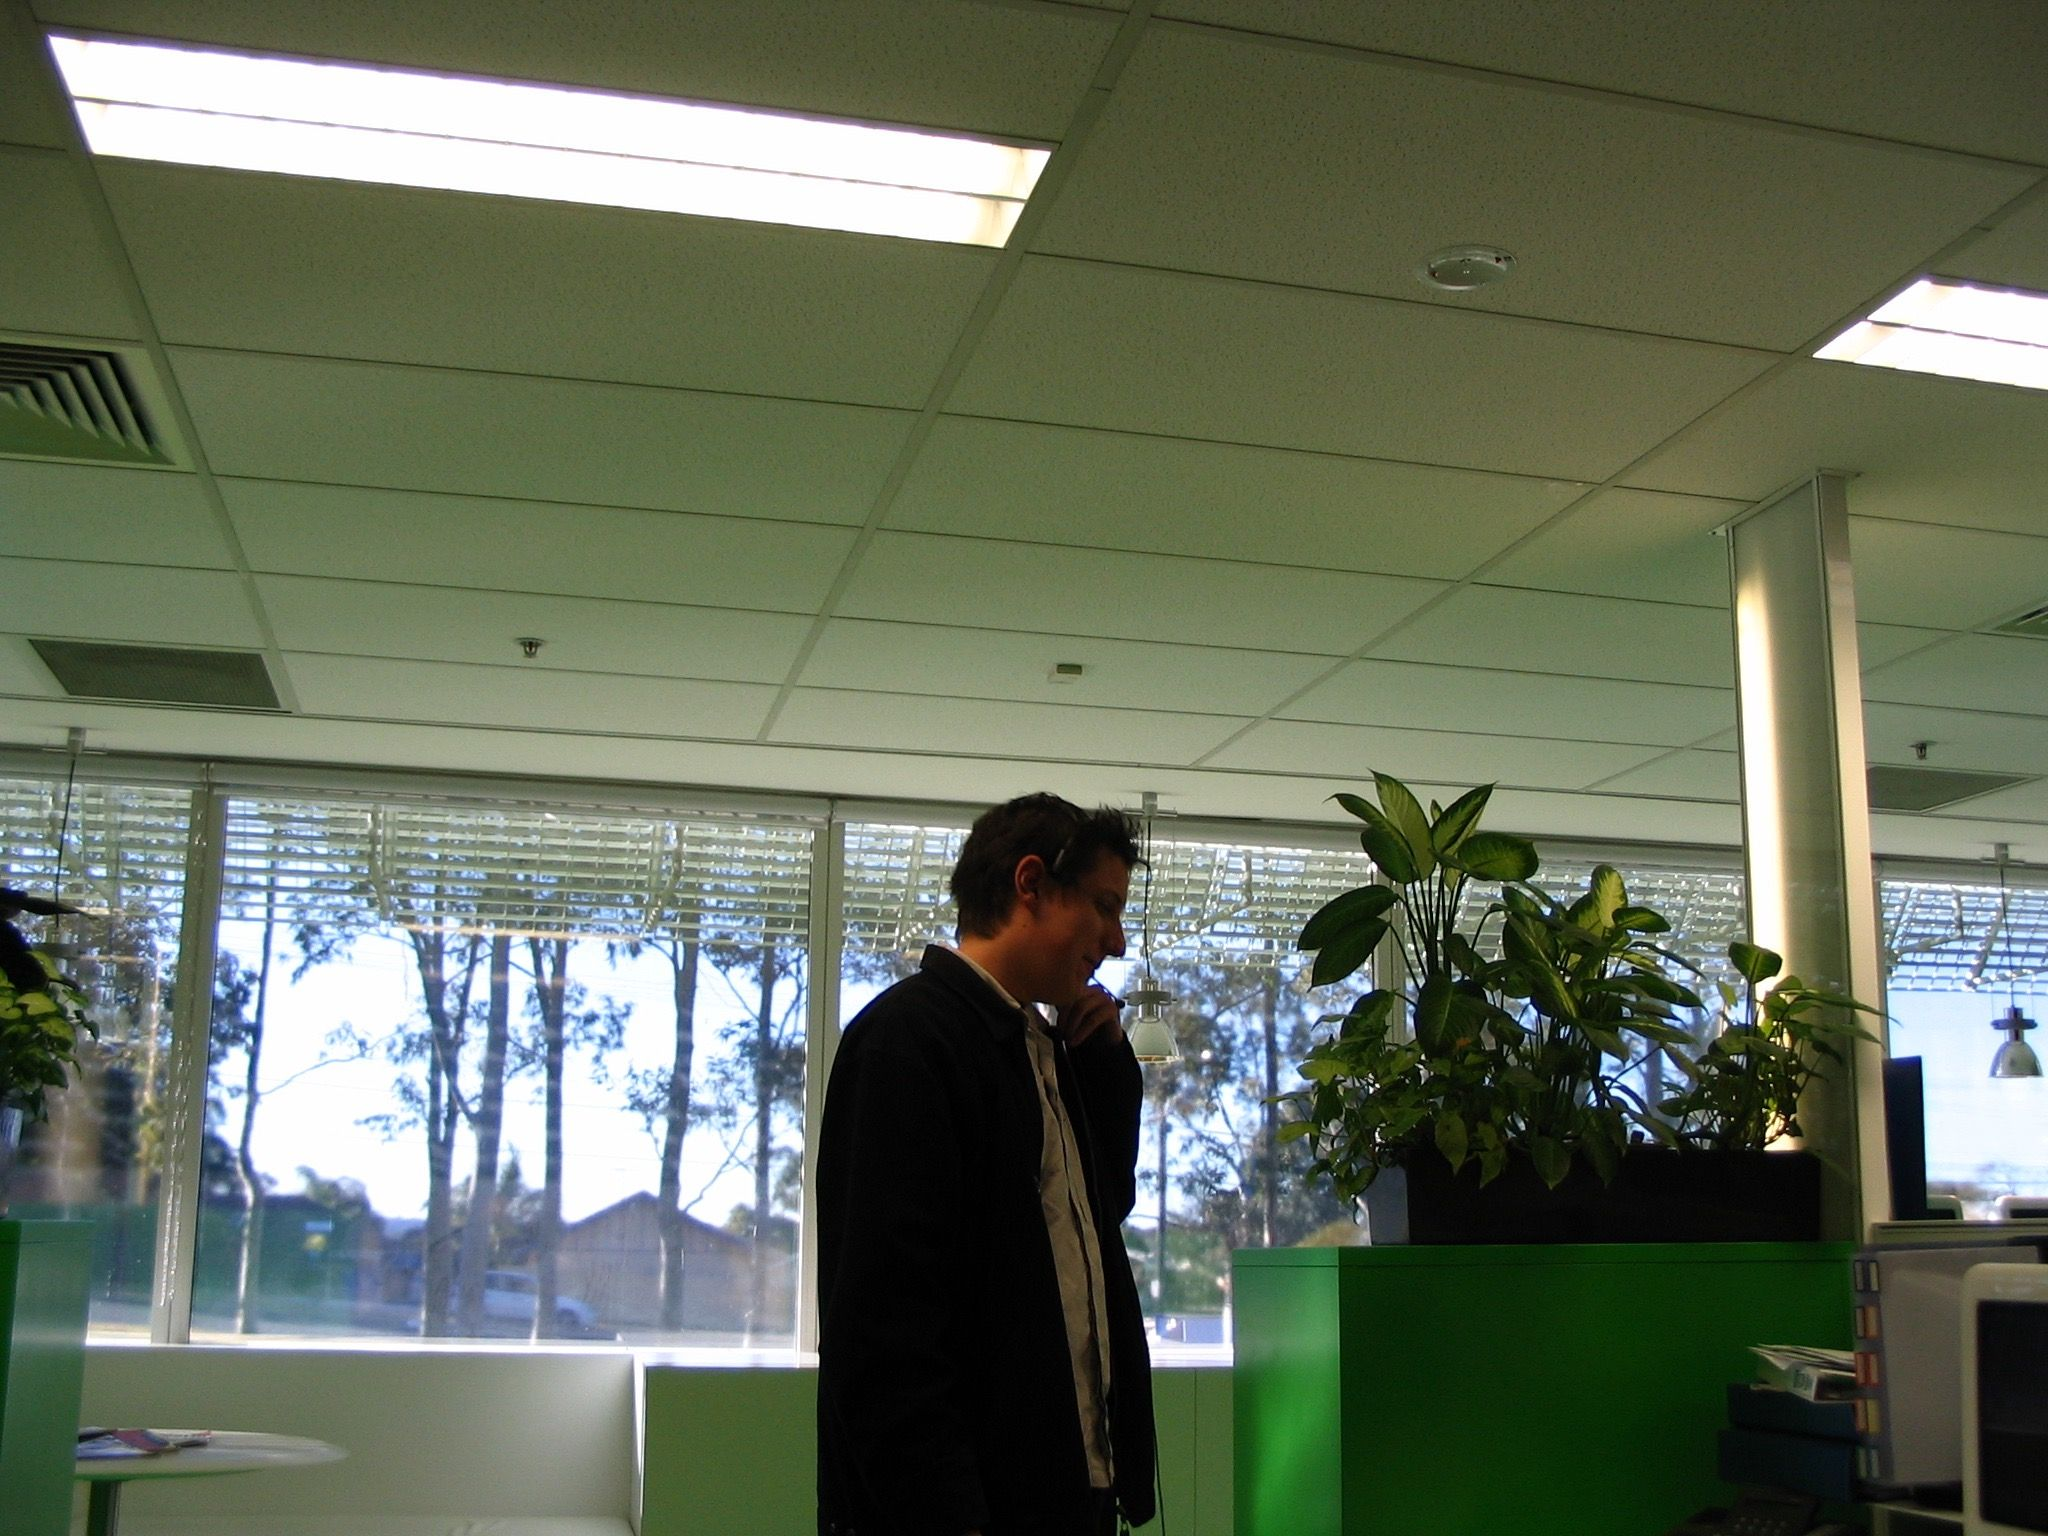 A somewhat backlit side-on photo of a white man in jacket with a call centre headset on, in the middle of talking.